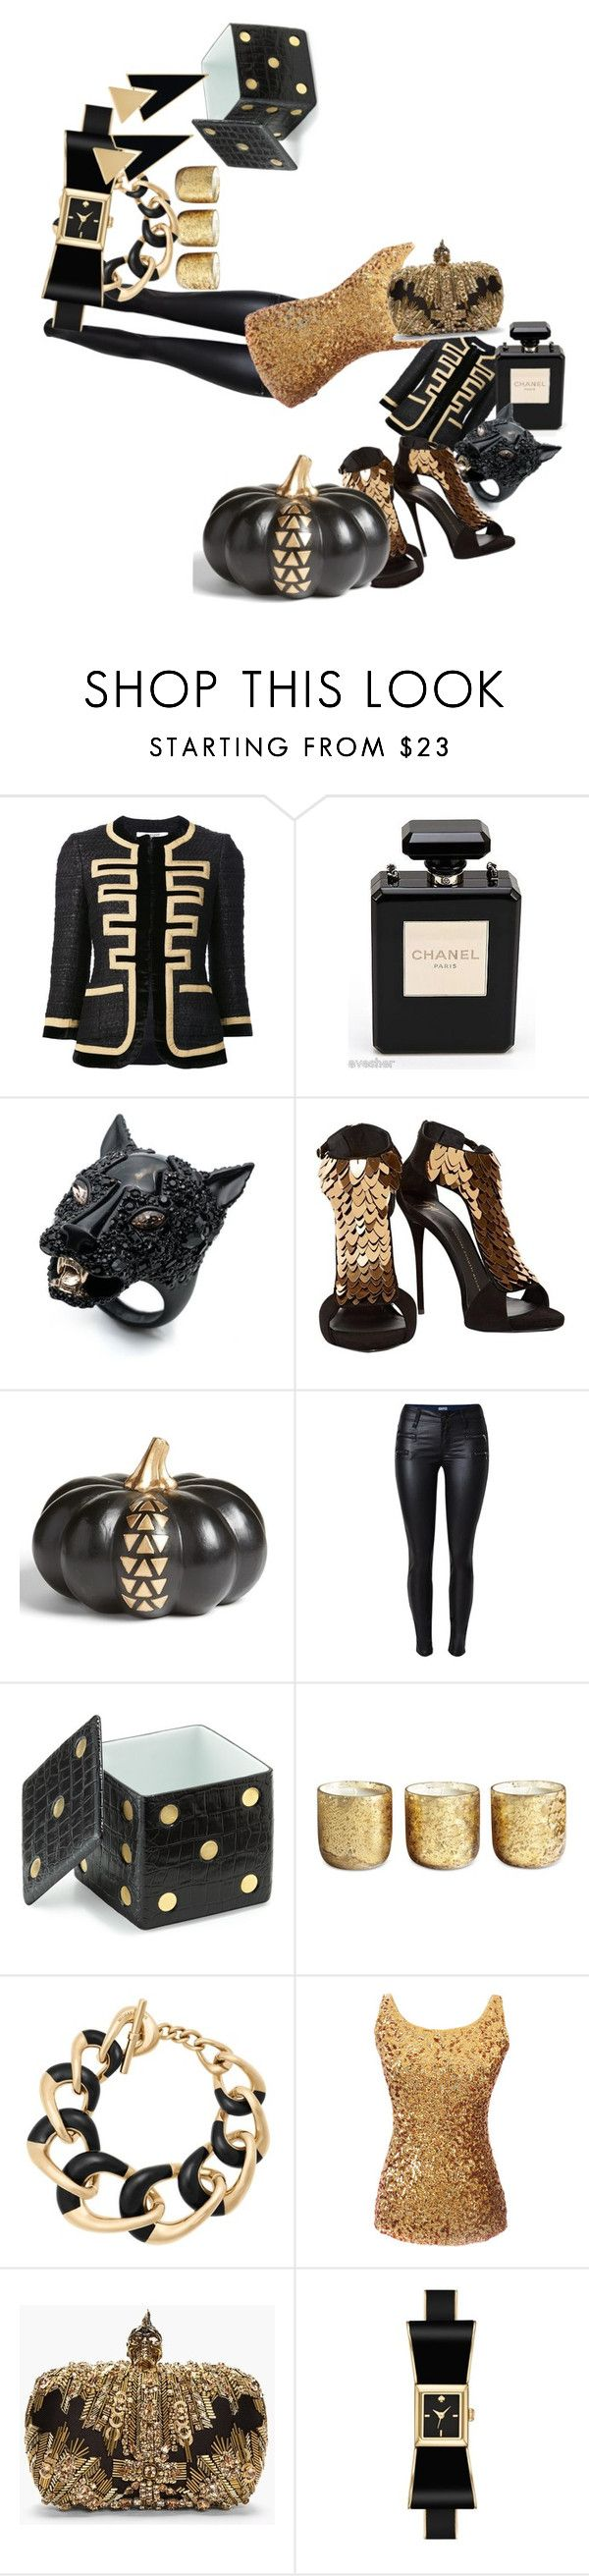 """#black_gold"" by margosedih ❤ liked on Polyvore featuring Givenchy, Chanel, Alexis Bittar, Giuseppe Zanotti, Levtex, L'Objet, Illume, Michael Kors, Alexander McQueen and Kate Spade"